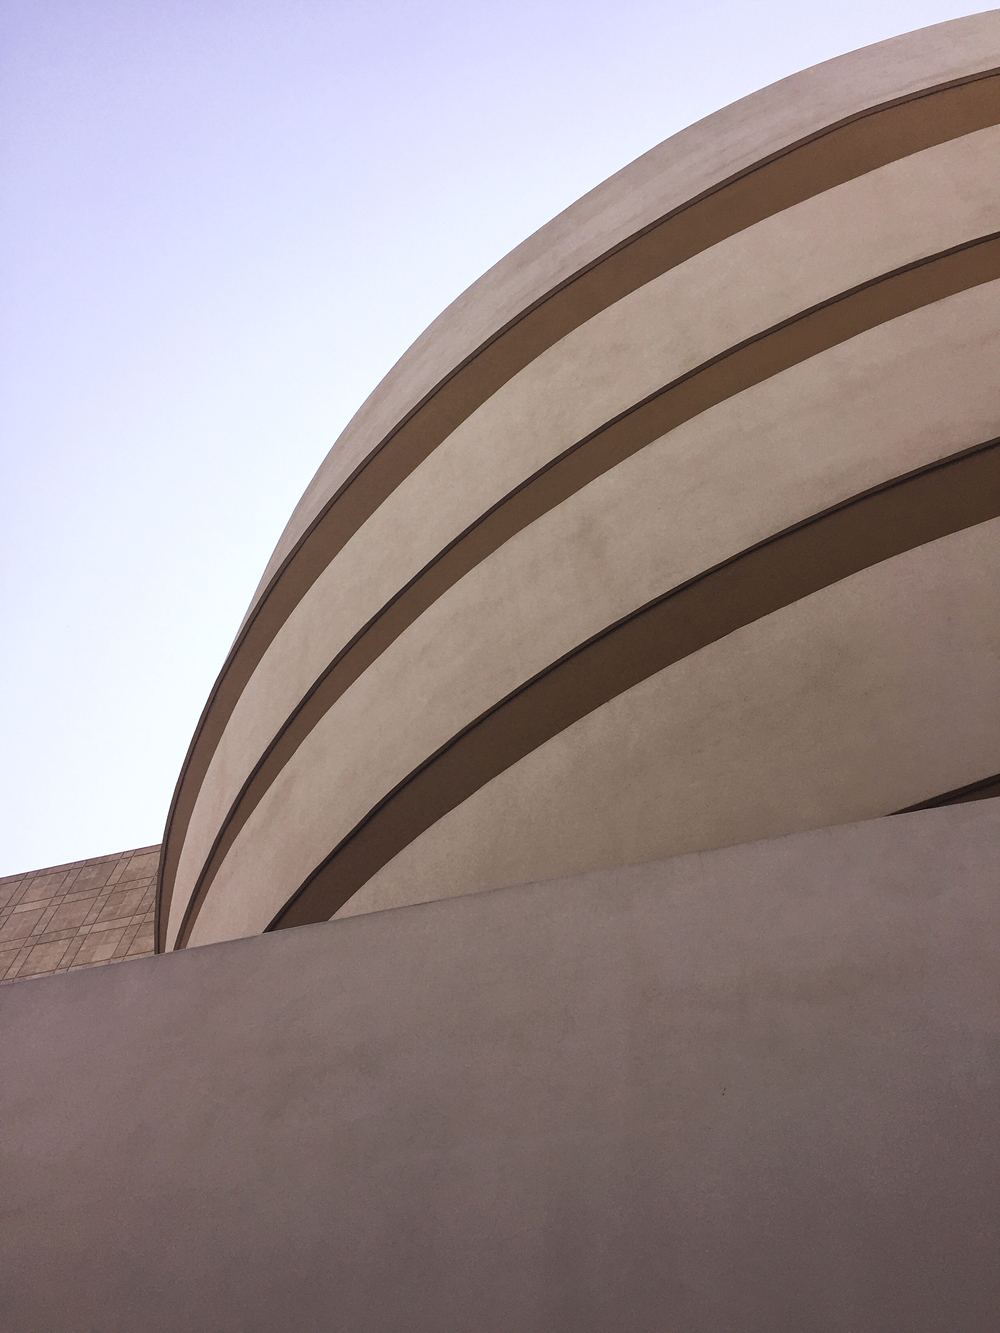 The Solomon R. Guggenheim museum in NYC